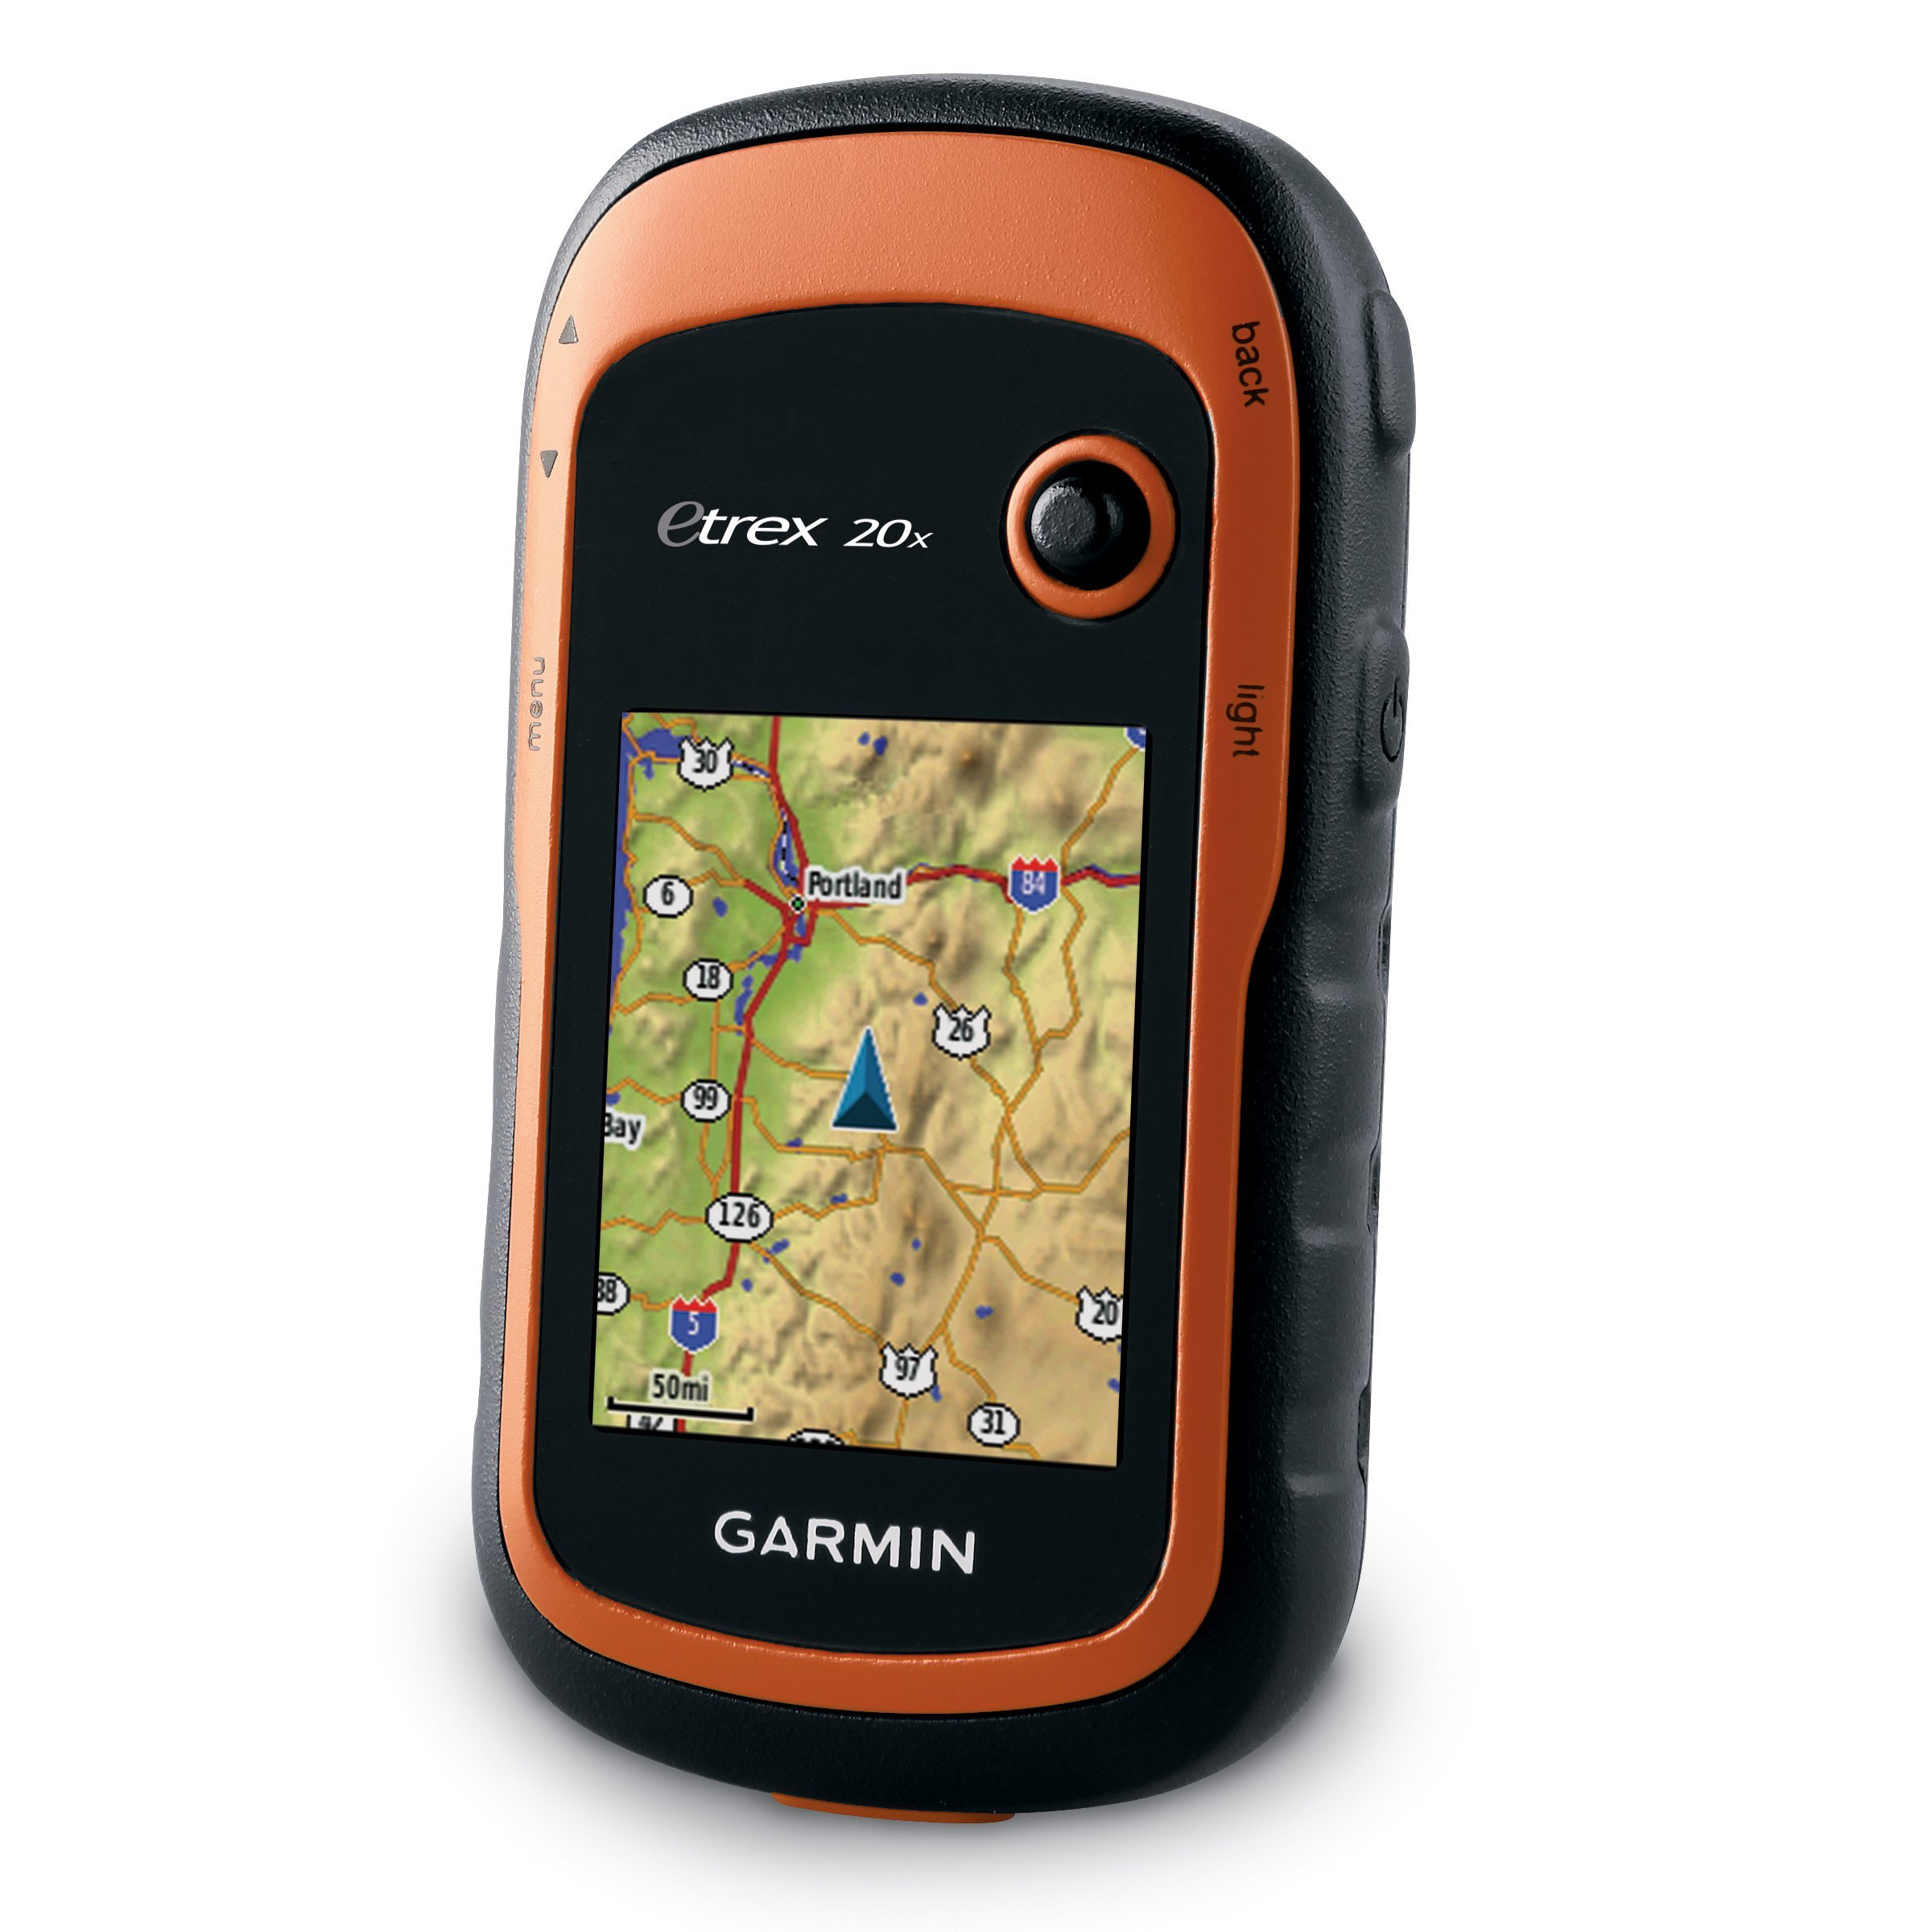 Garmin eTrex 20x by Garmin